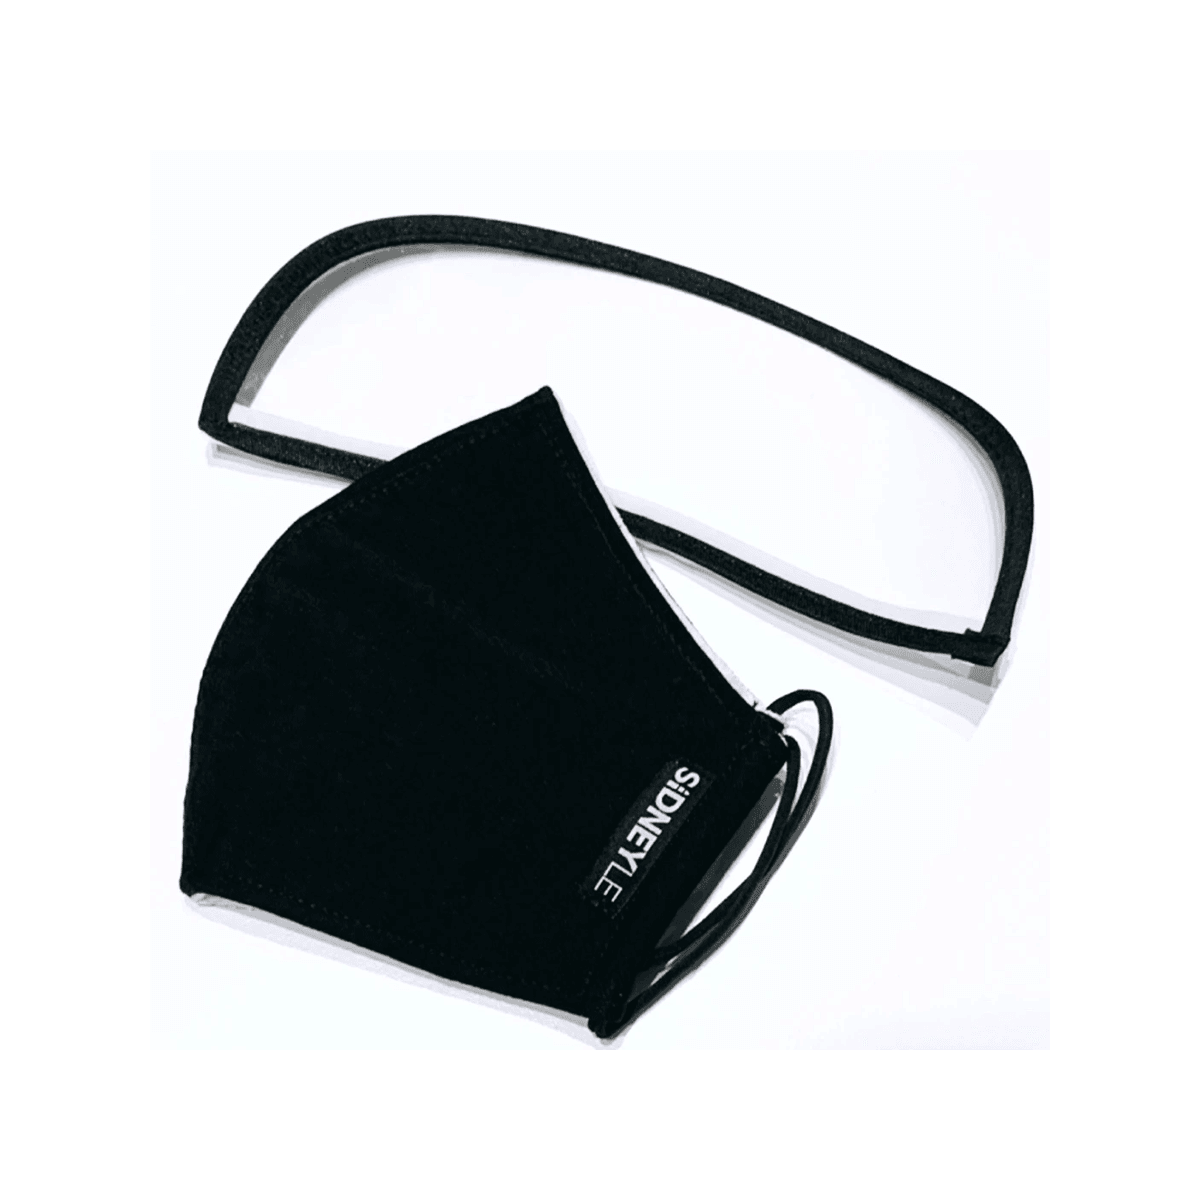 Yamibuy.com:Customer reviews:SiDNEYLE Reusable Cloth Face Mask with Removable Eye Shield #Black 1 Pack